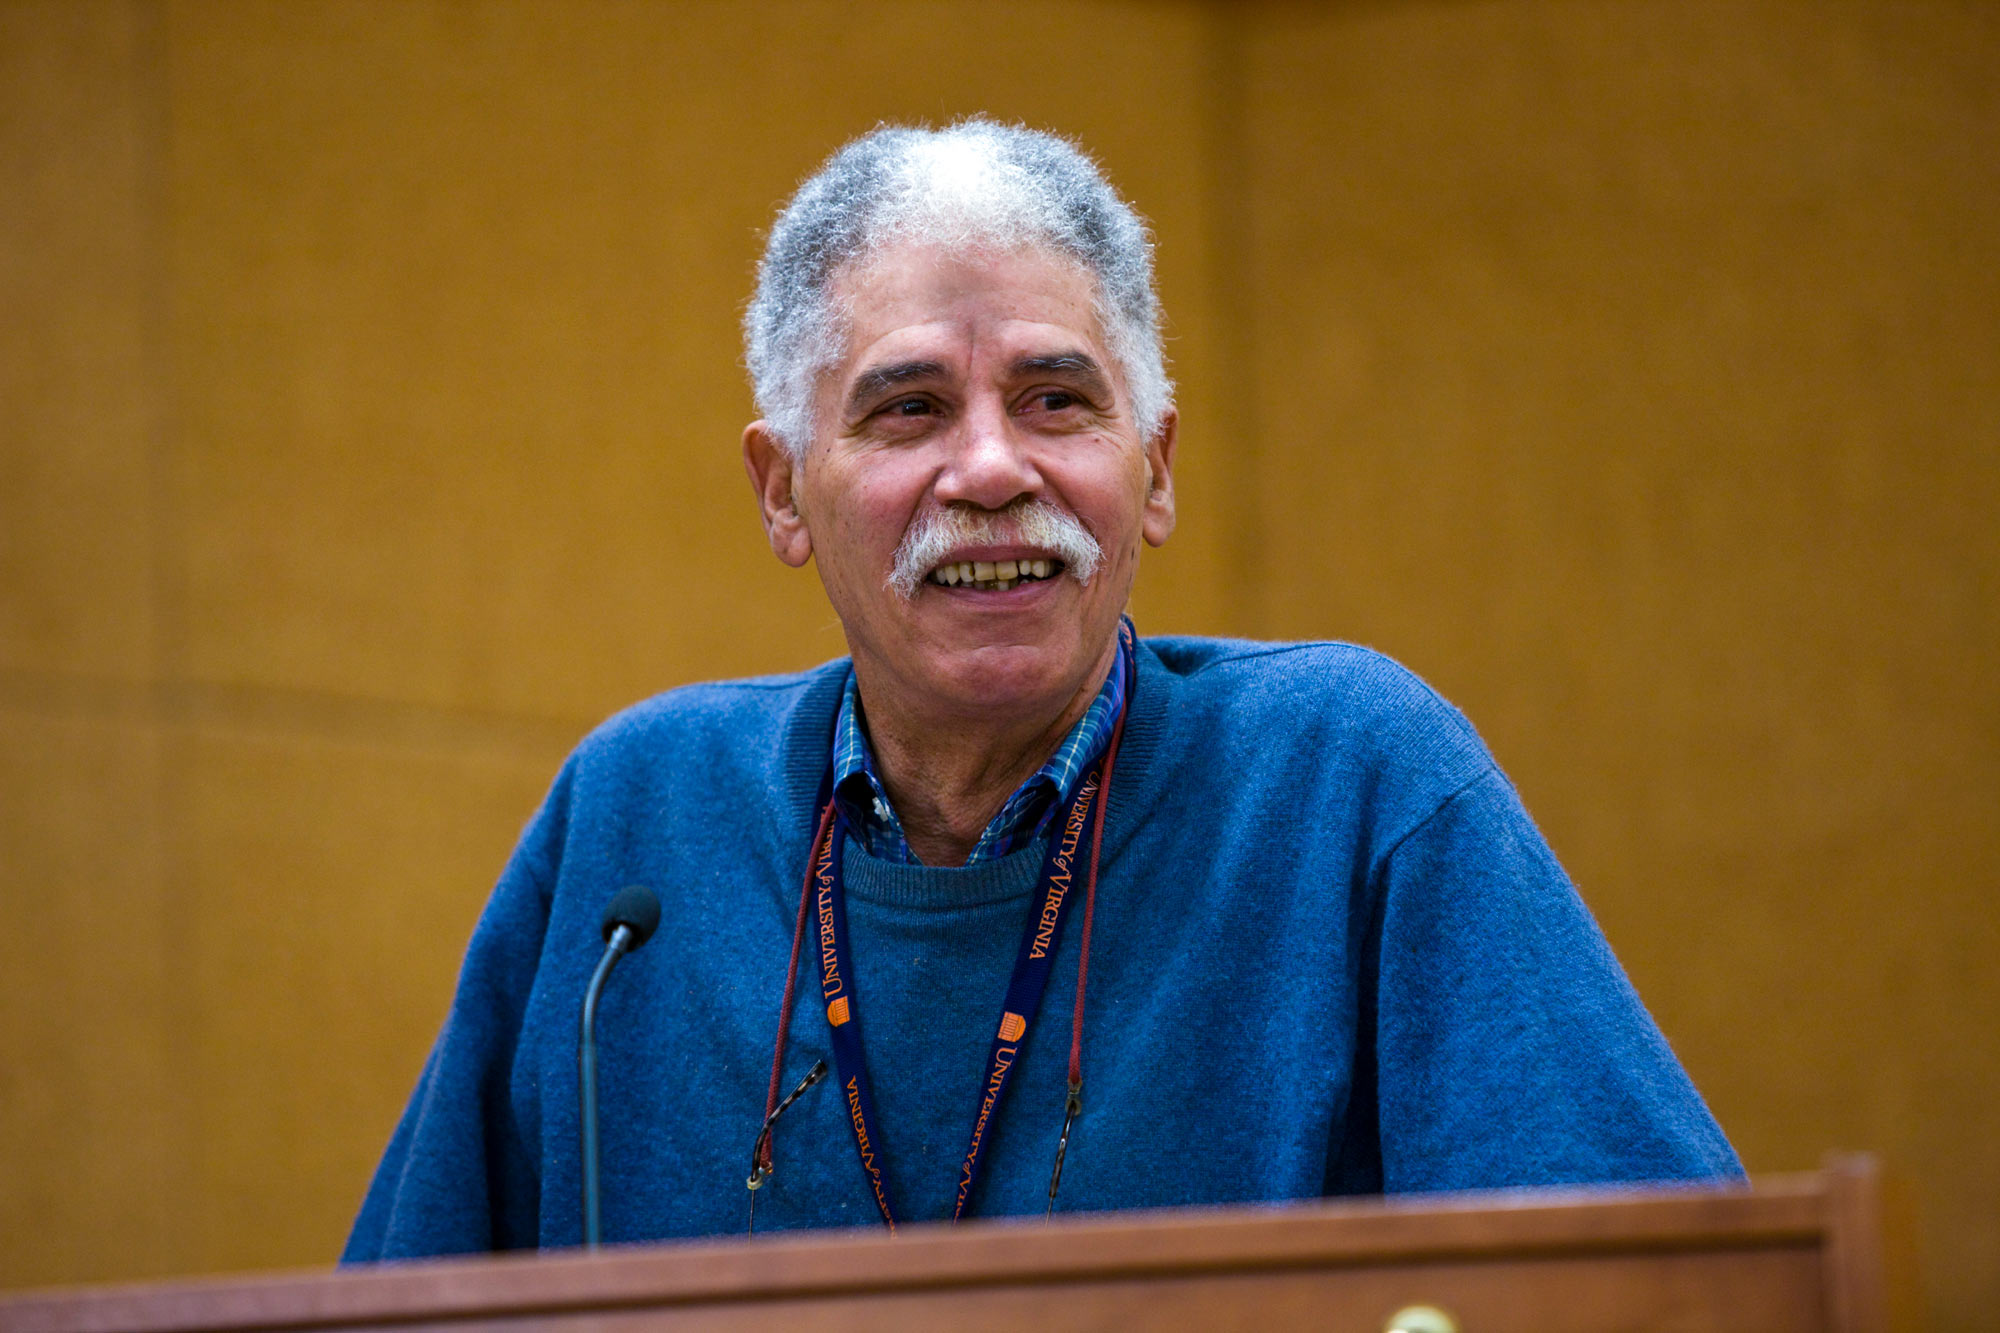 John F. Merchant, who became the School of Law's first black student to graduate in 1958, returned to a special alumni reunion for pioneering African-American students in 2009.